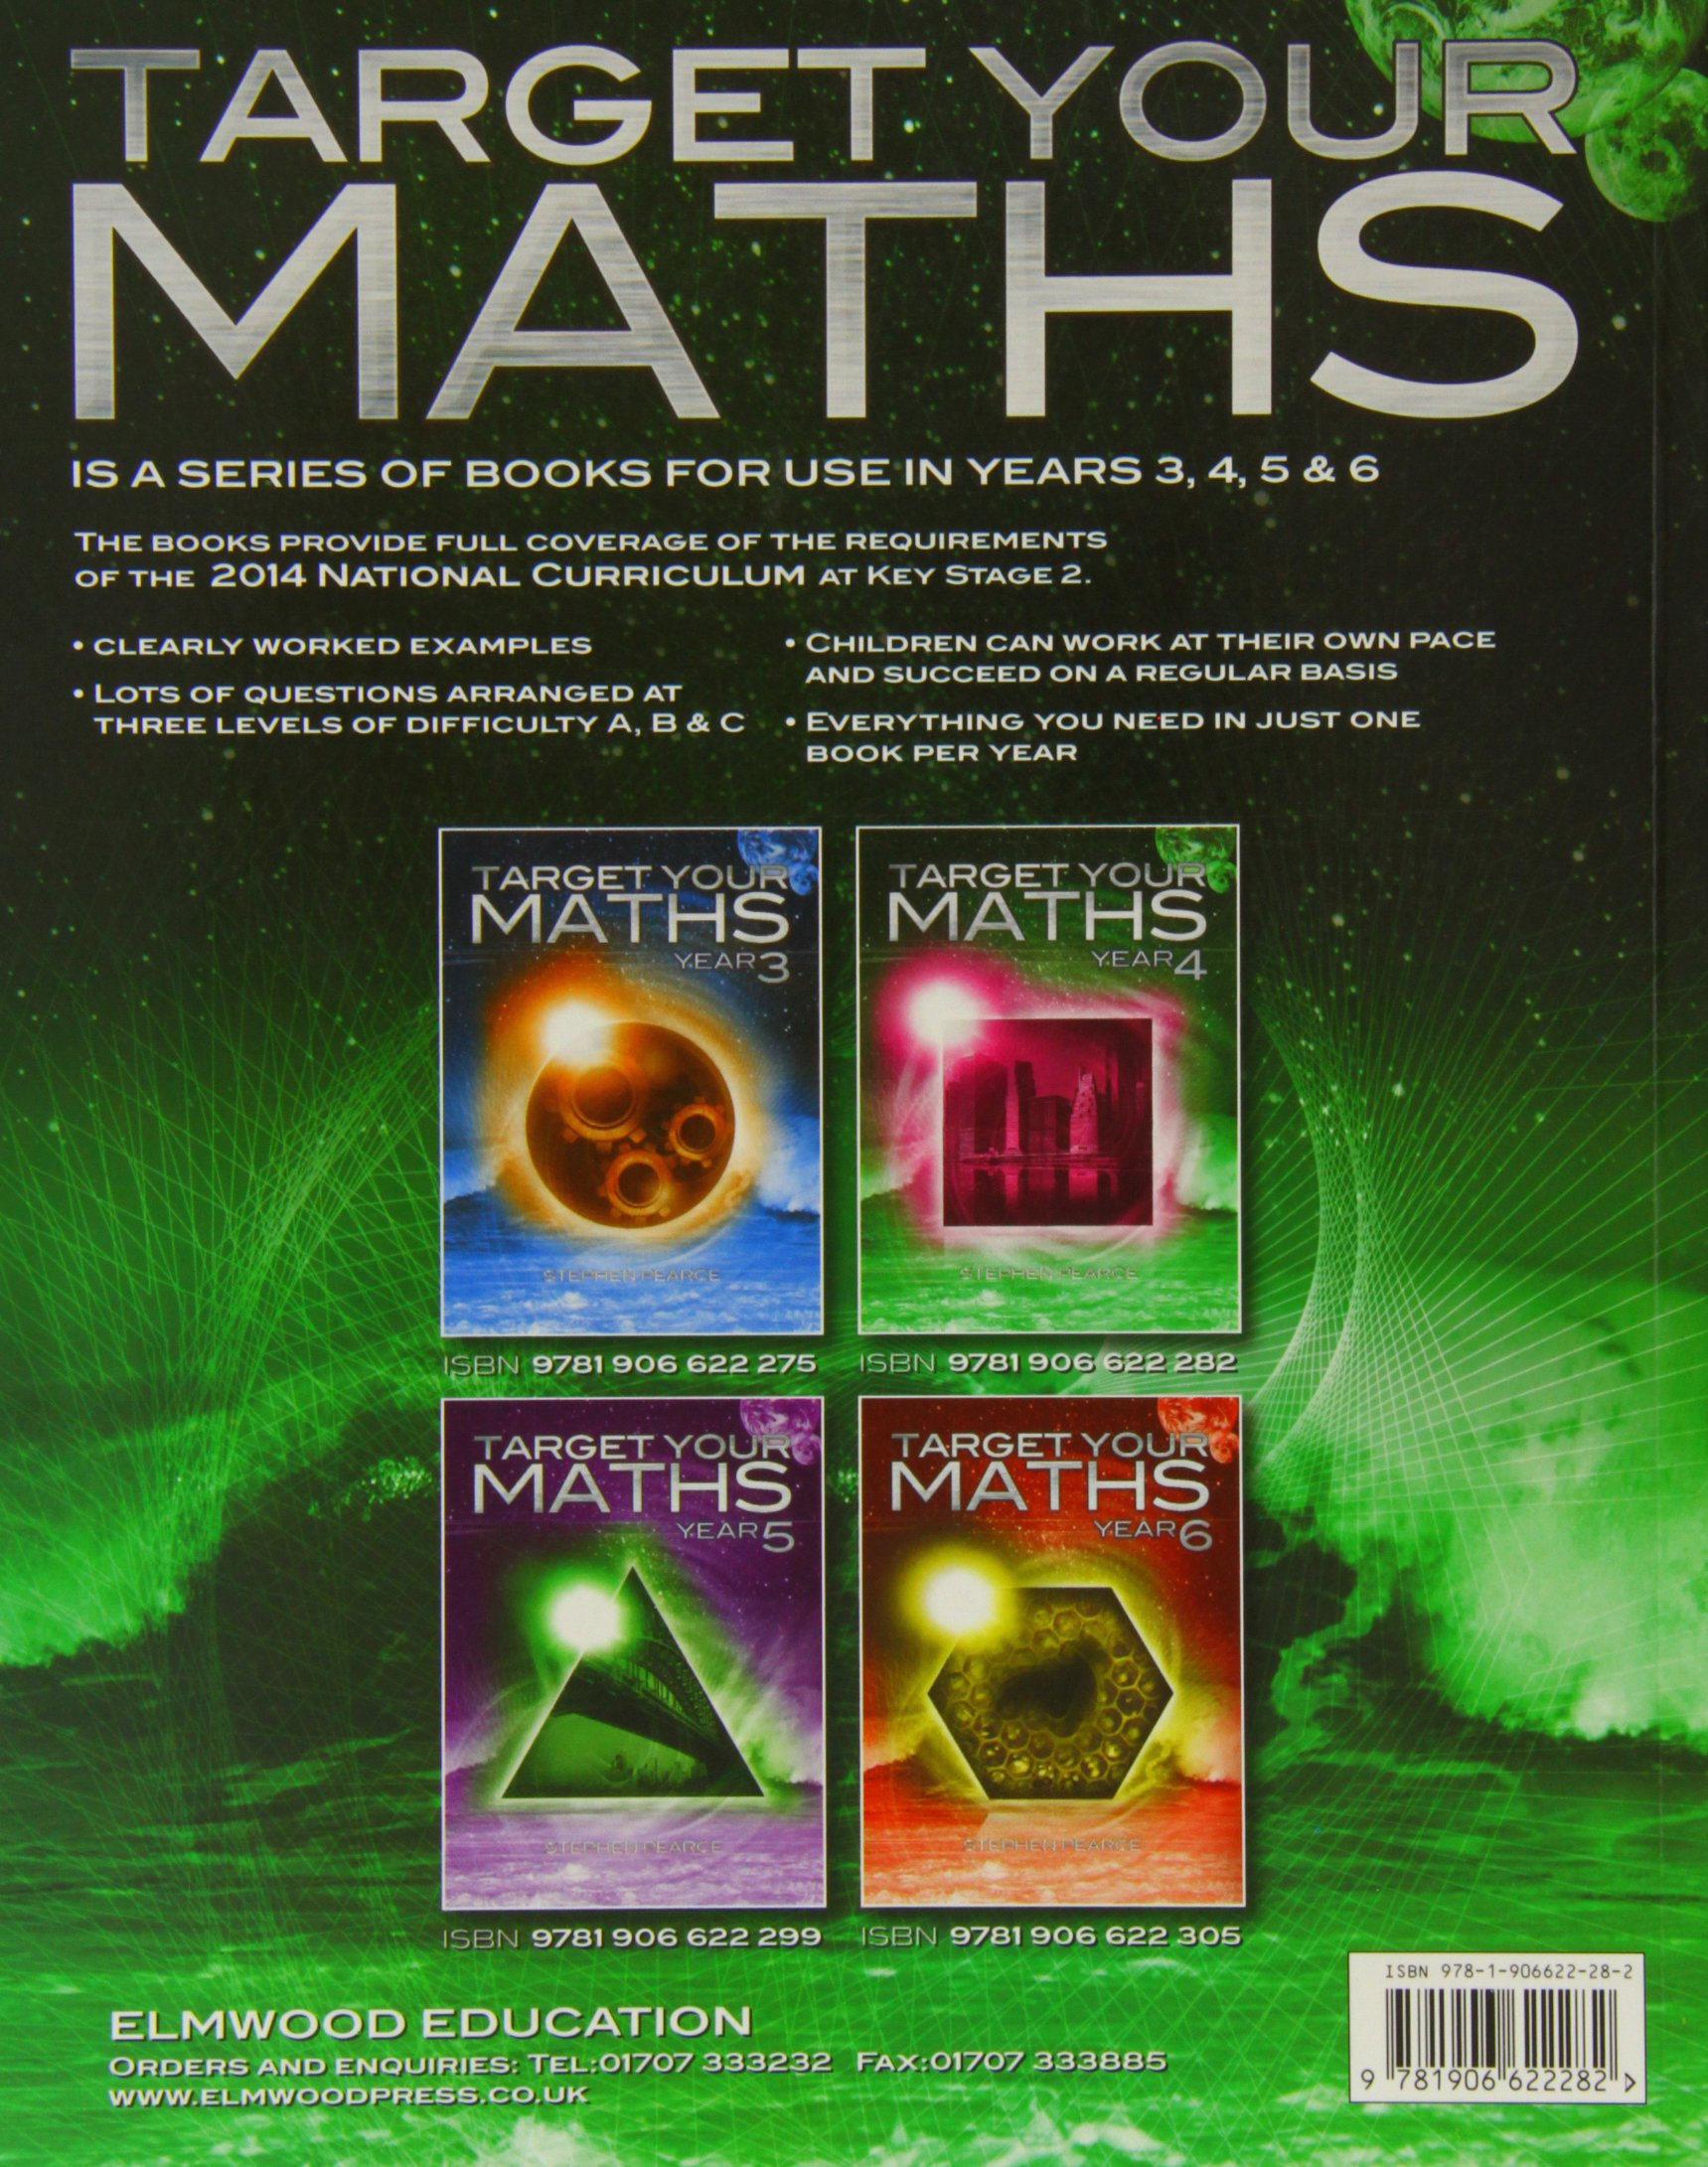 Target Your Maths Year 4 Year 4 Amazoncouk Stephen